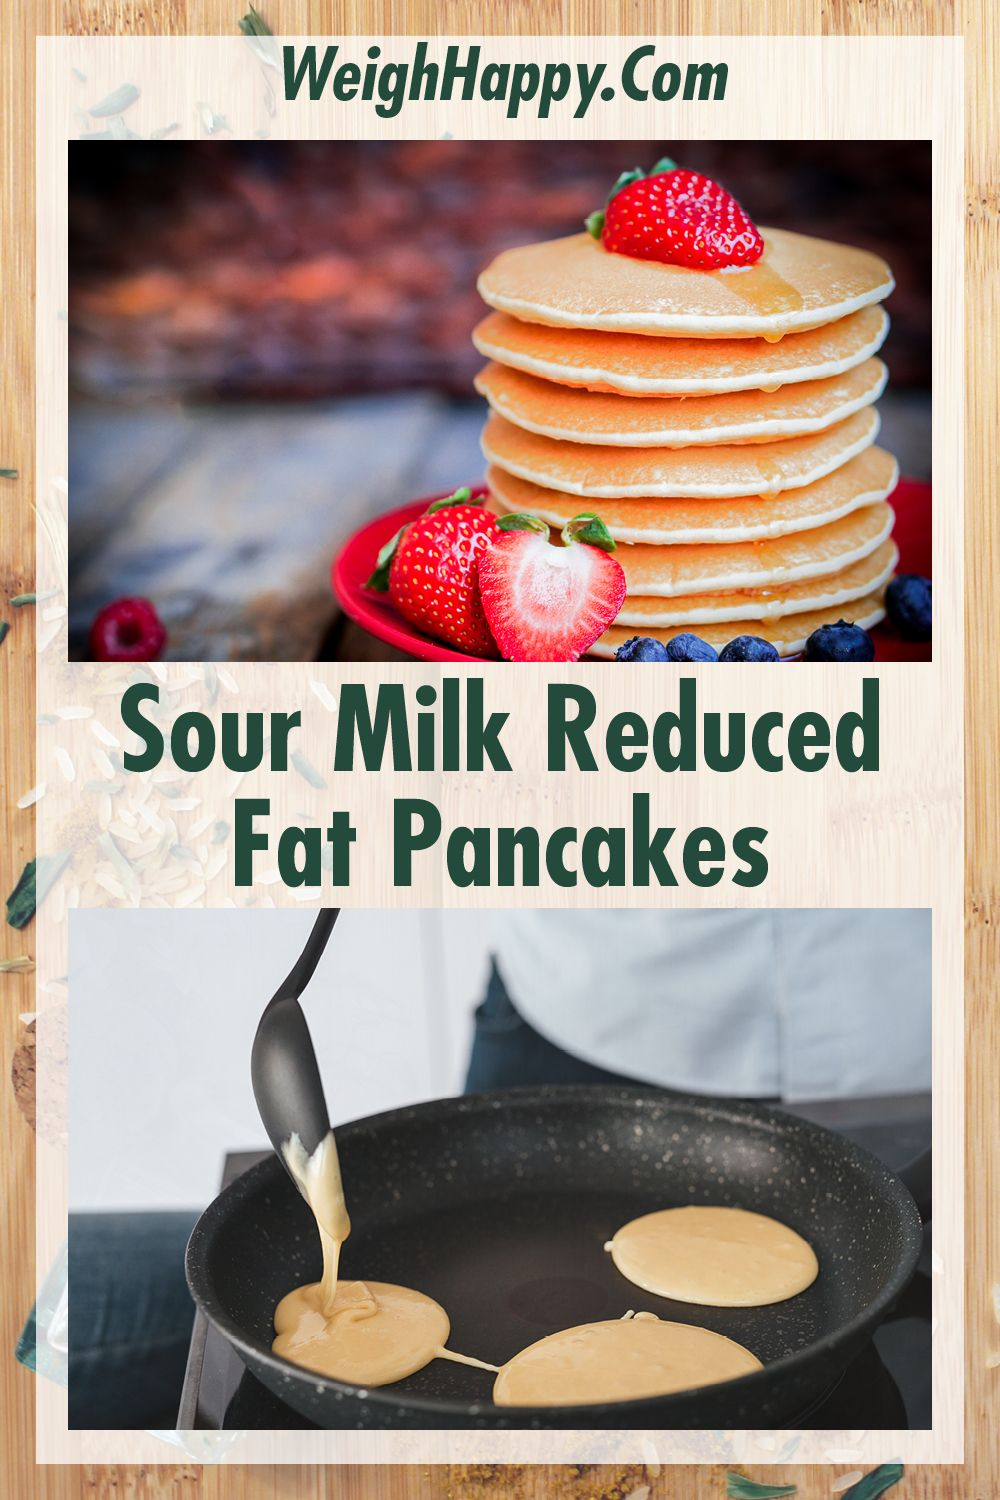 Lower Calorie Sour Milk Pancakes Easy And Healthy To Better Health Recipe In 2020 Sour Milk Pancakes Sour Milk Recipes Soured Milk